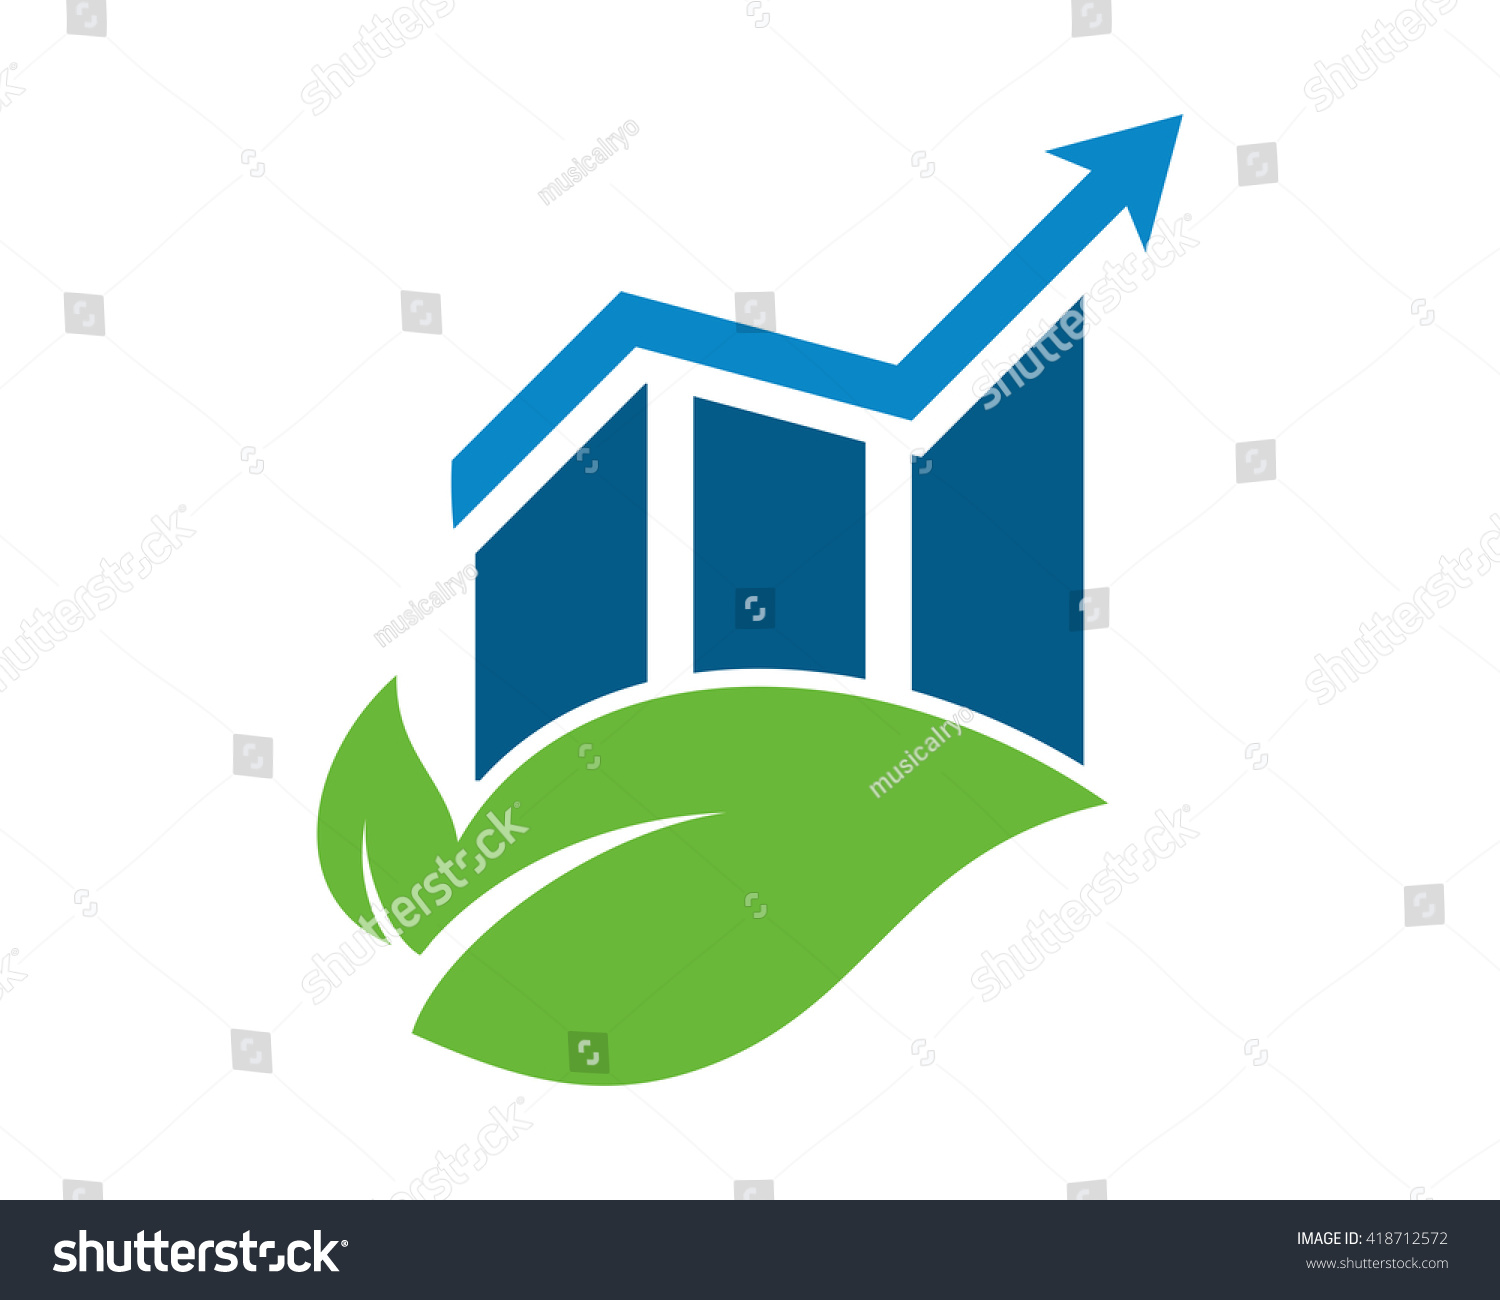 Leaf diagram graph image vector icon stock vector 418712572 leaf diagram graph image vector icon pooptronica Choice Image